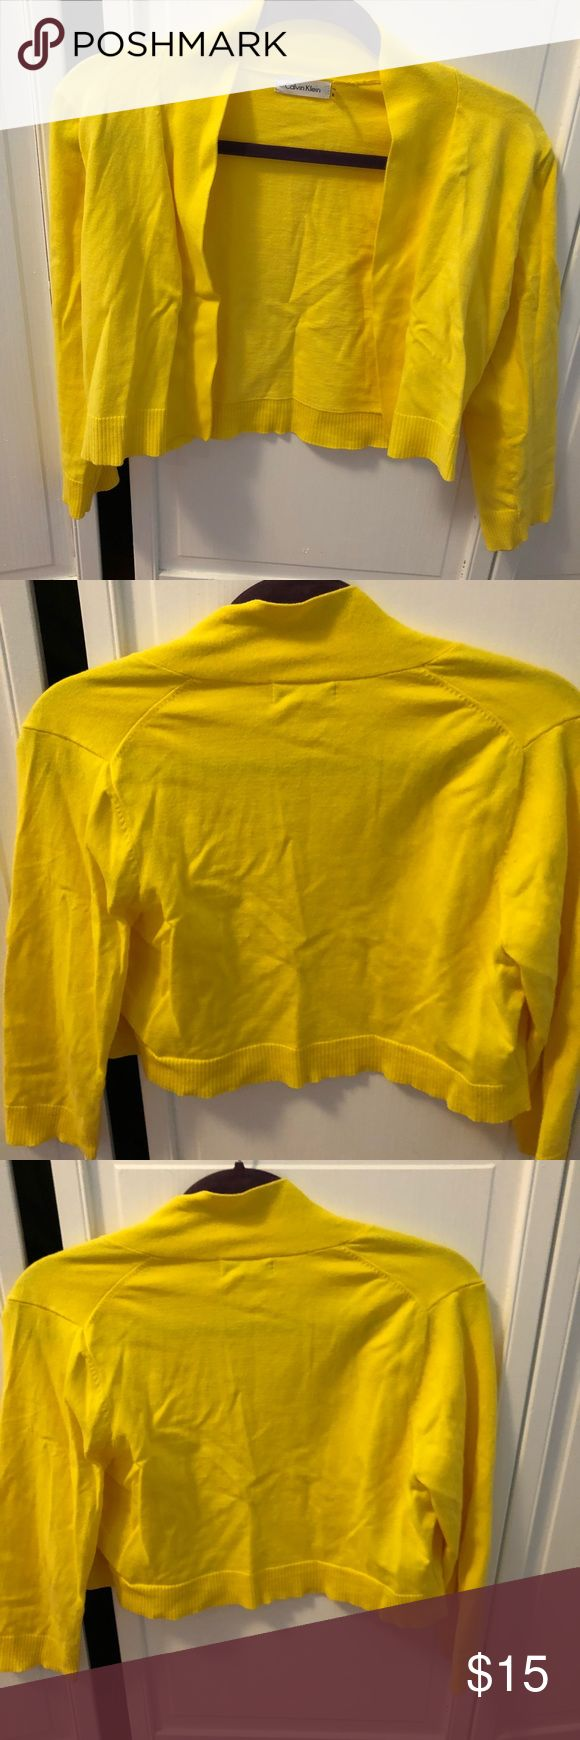 Calvin Klein yellow shrug Calvin Klein shrug, size medium. Only worn once.  It's a bright yellow, 76% cotton 24% nylon.  It's stretchy but is sturdy so won't get stretched out. Calvin Klein Sweaters Shrugs & Ponchos